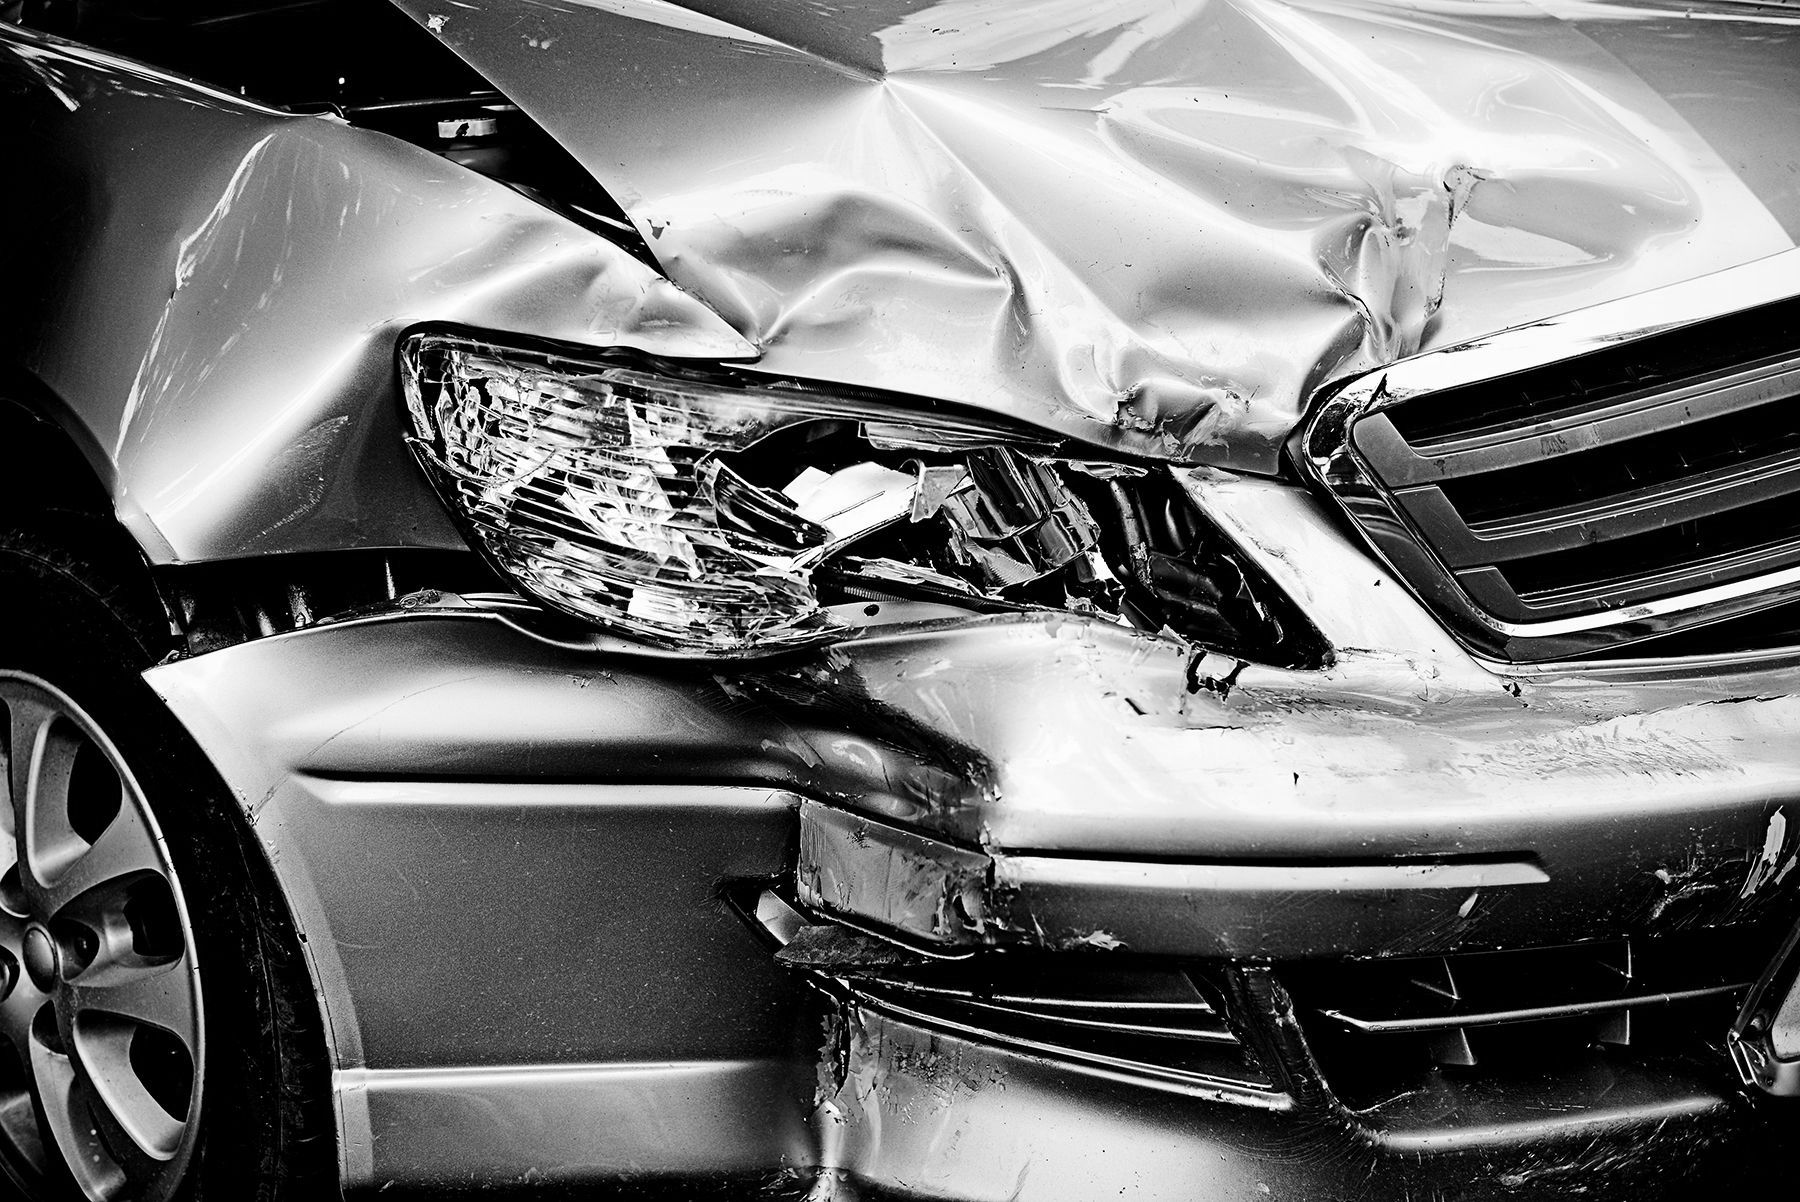 Aftermath of an auto accident